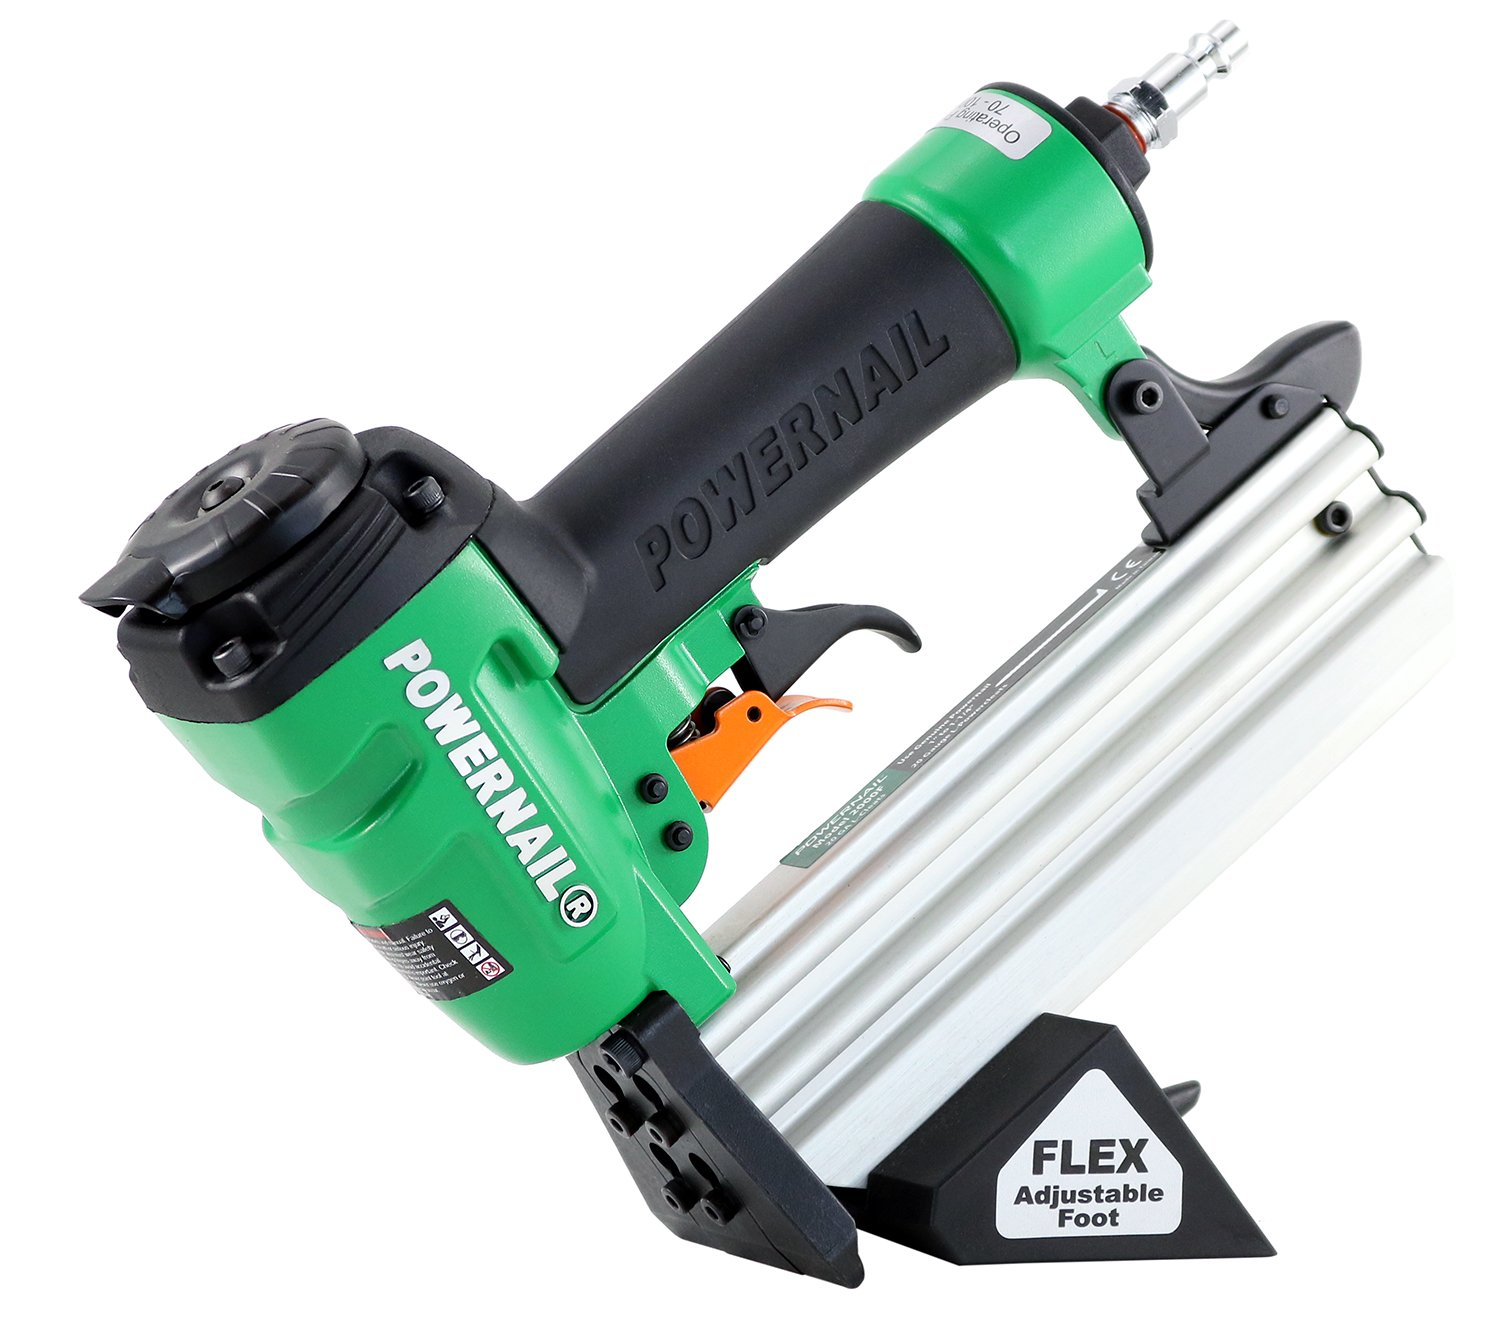 Powernail Model 2000FKIT, 20-Gauge Trigger-pull Flooring Nailer for Tongue and Groove Engineered Floors